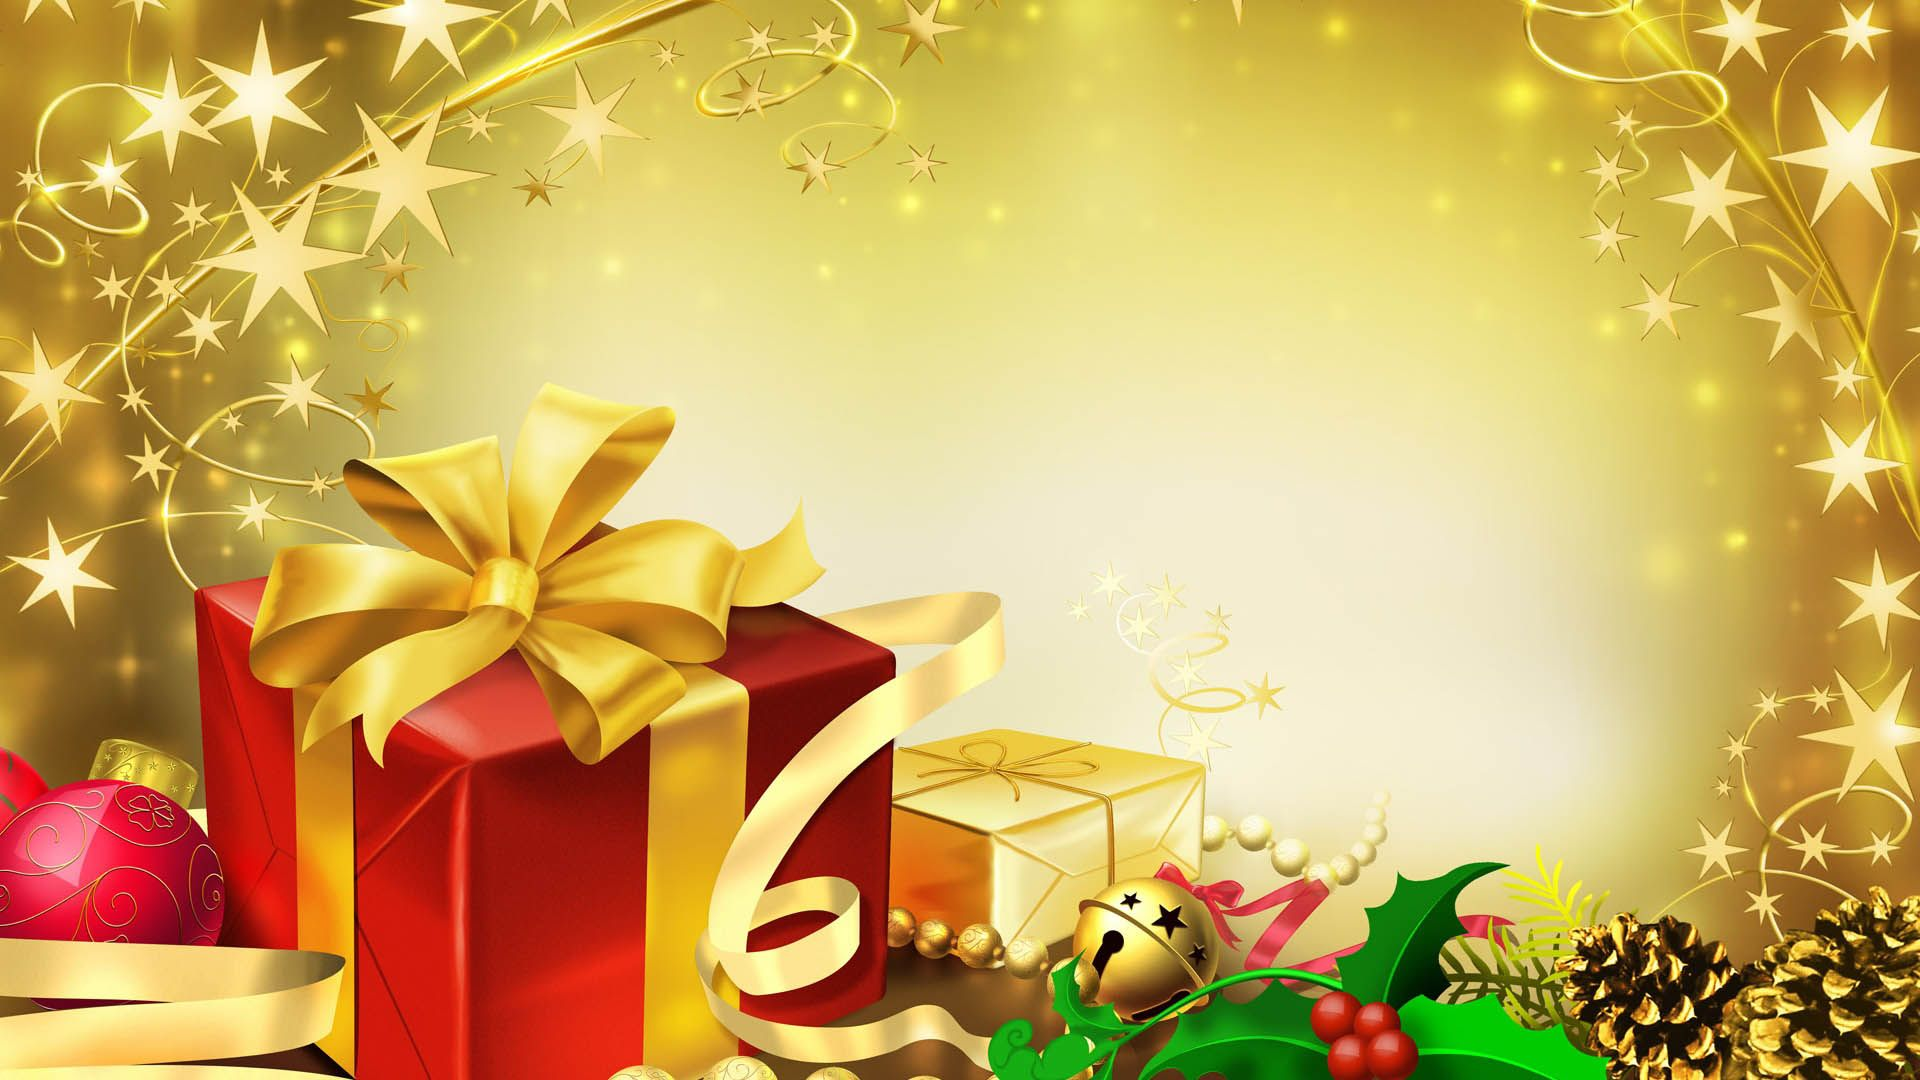 Christmas Cards HD Wallpapers 4